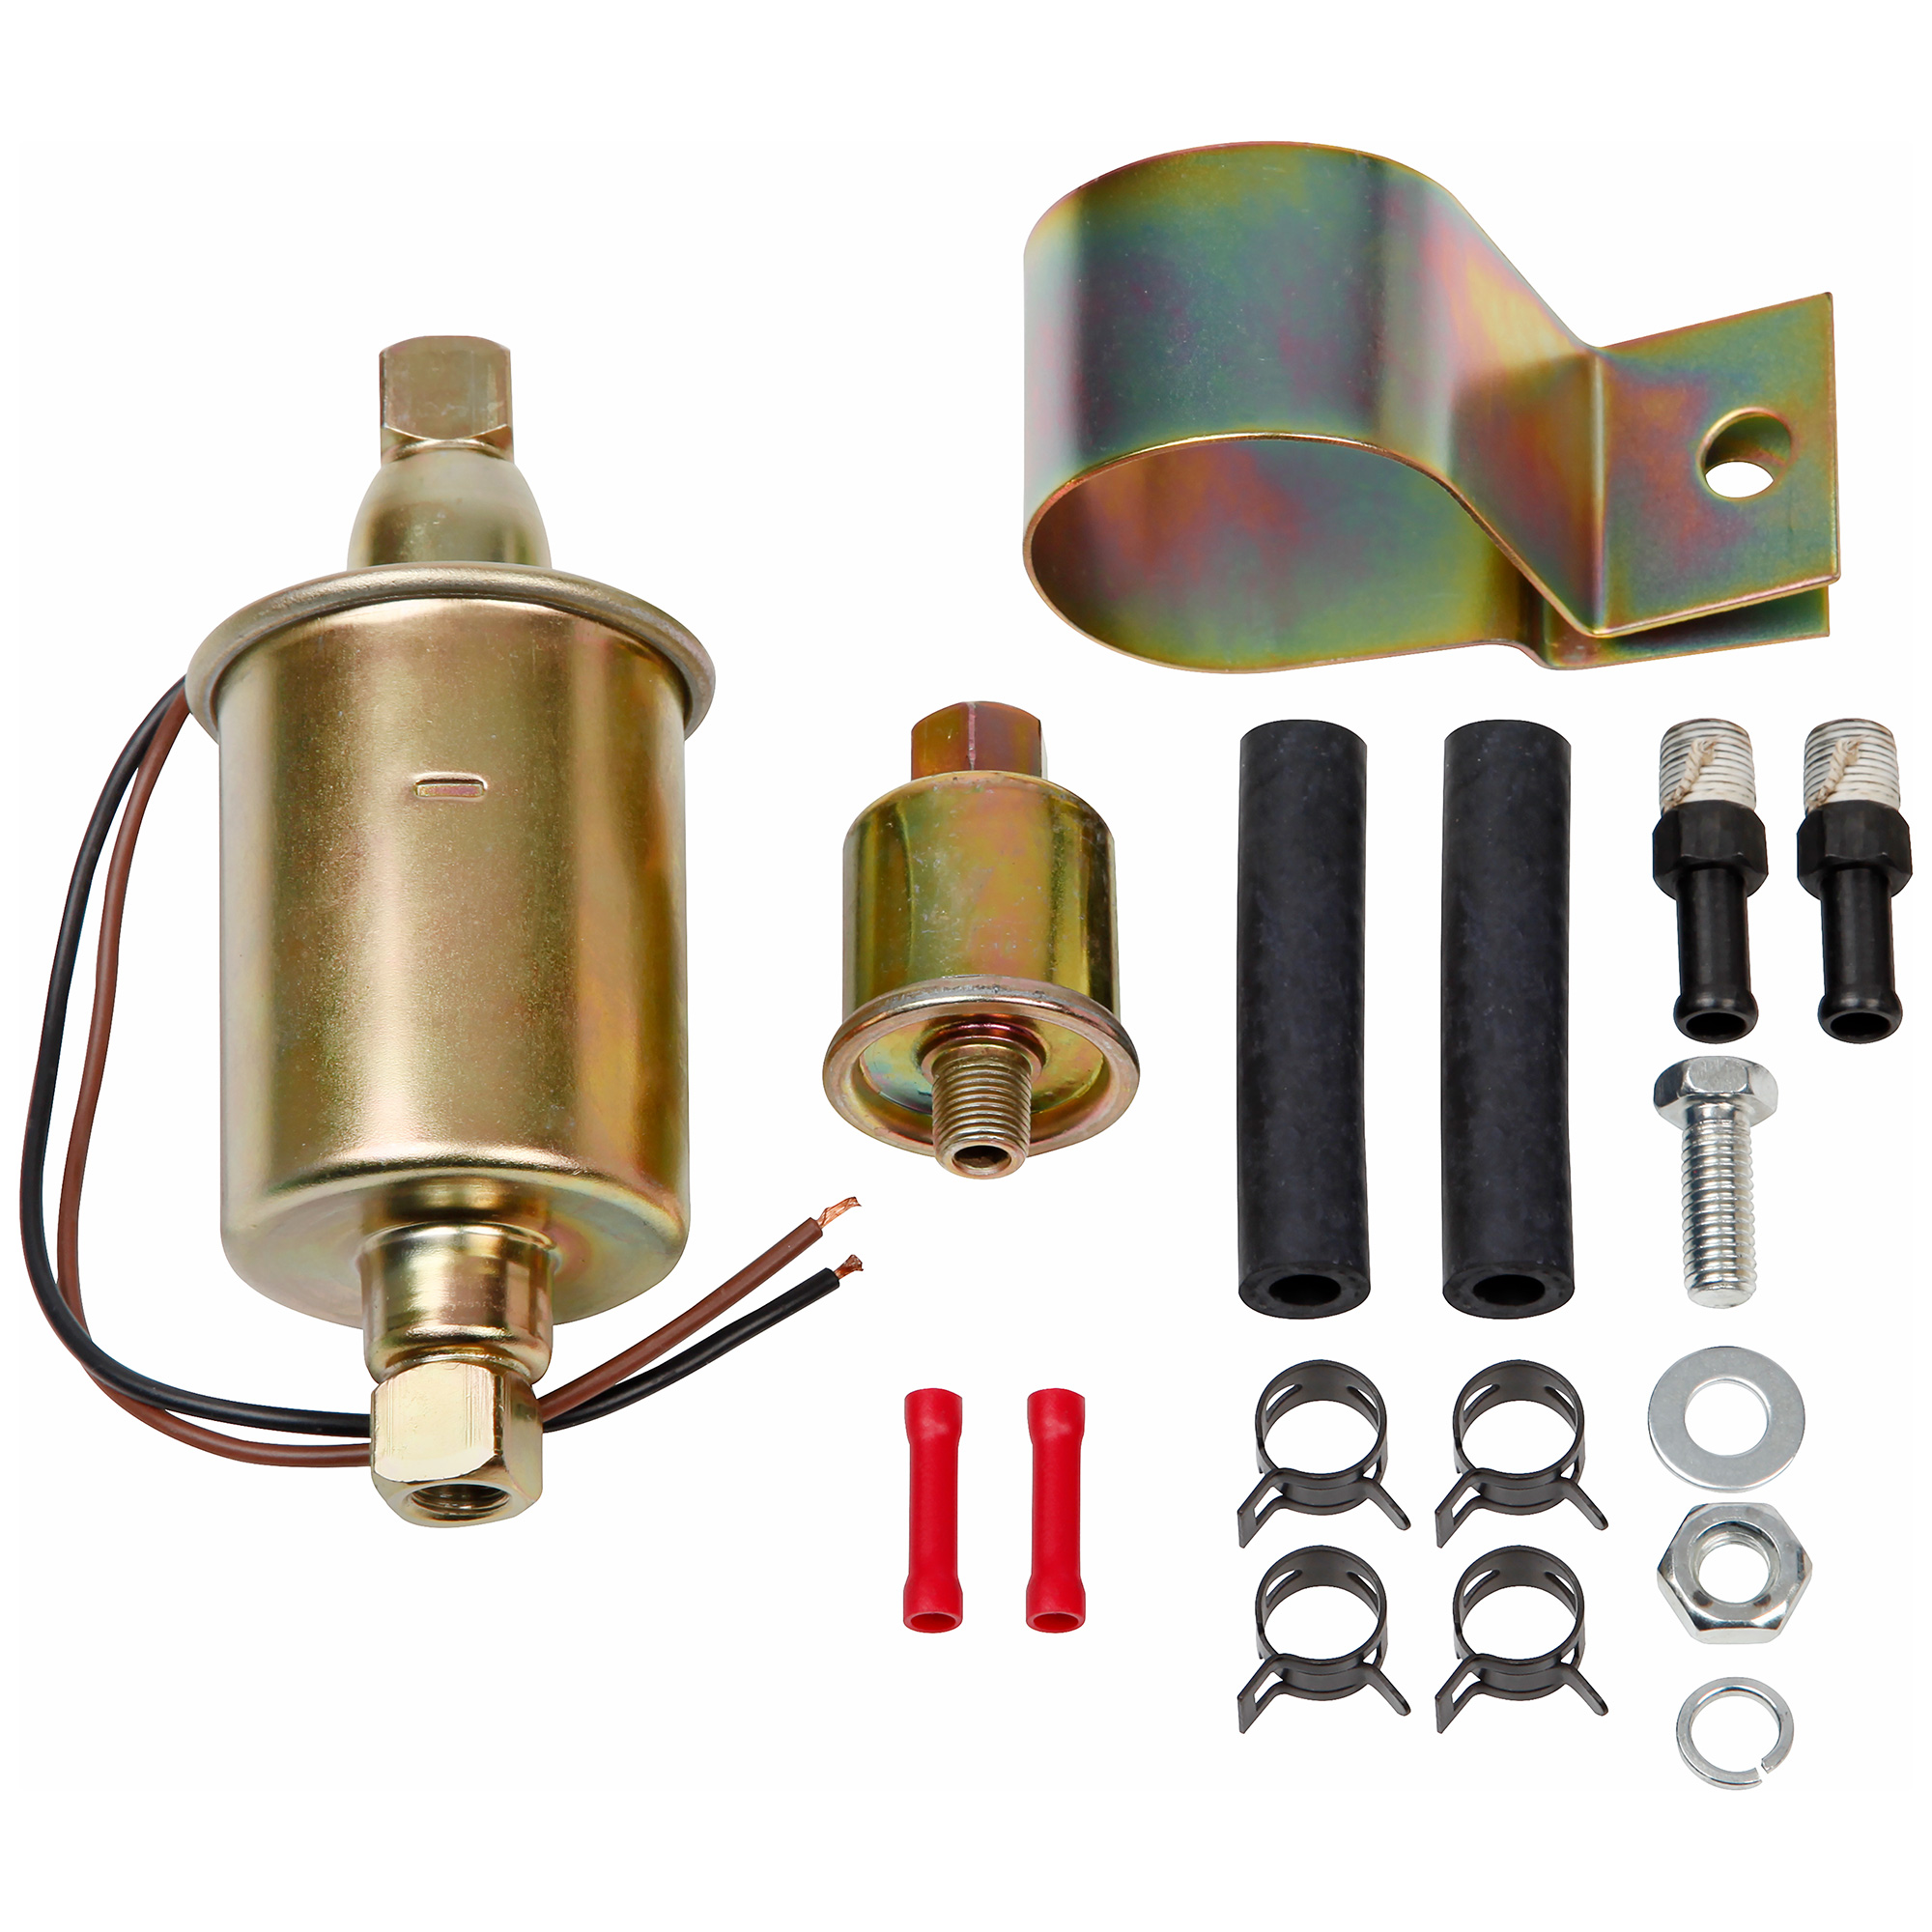 377 420 Solid State Electric Fuel Pump By Facet Moss Motors Universal Wiring Schematic Kit Lucas